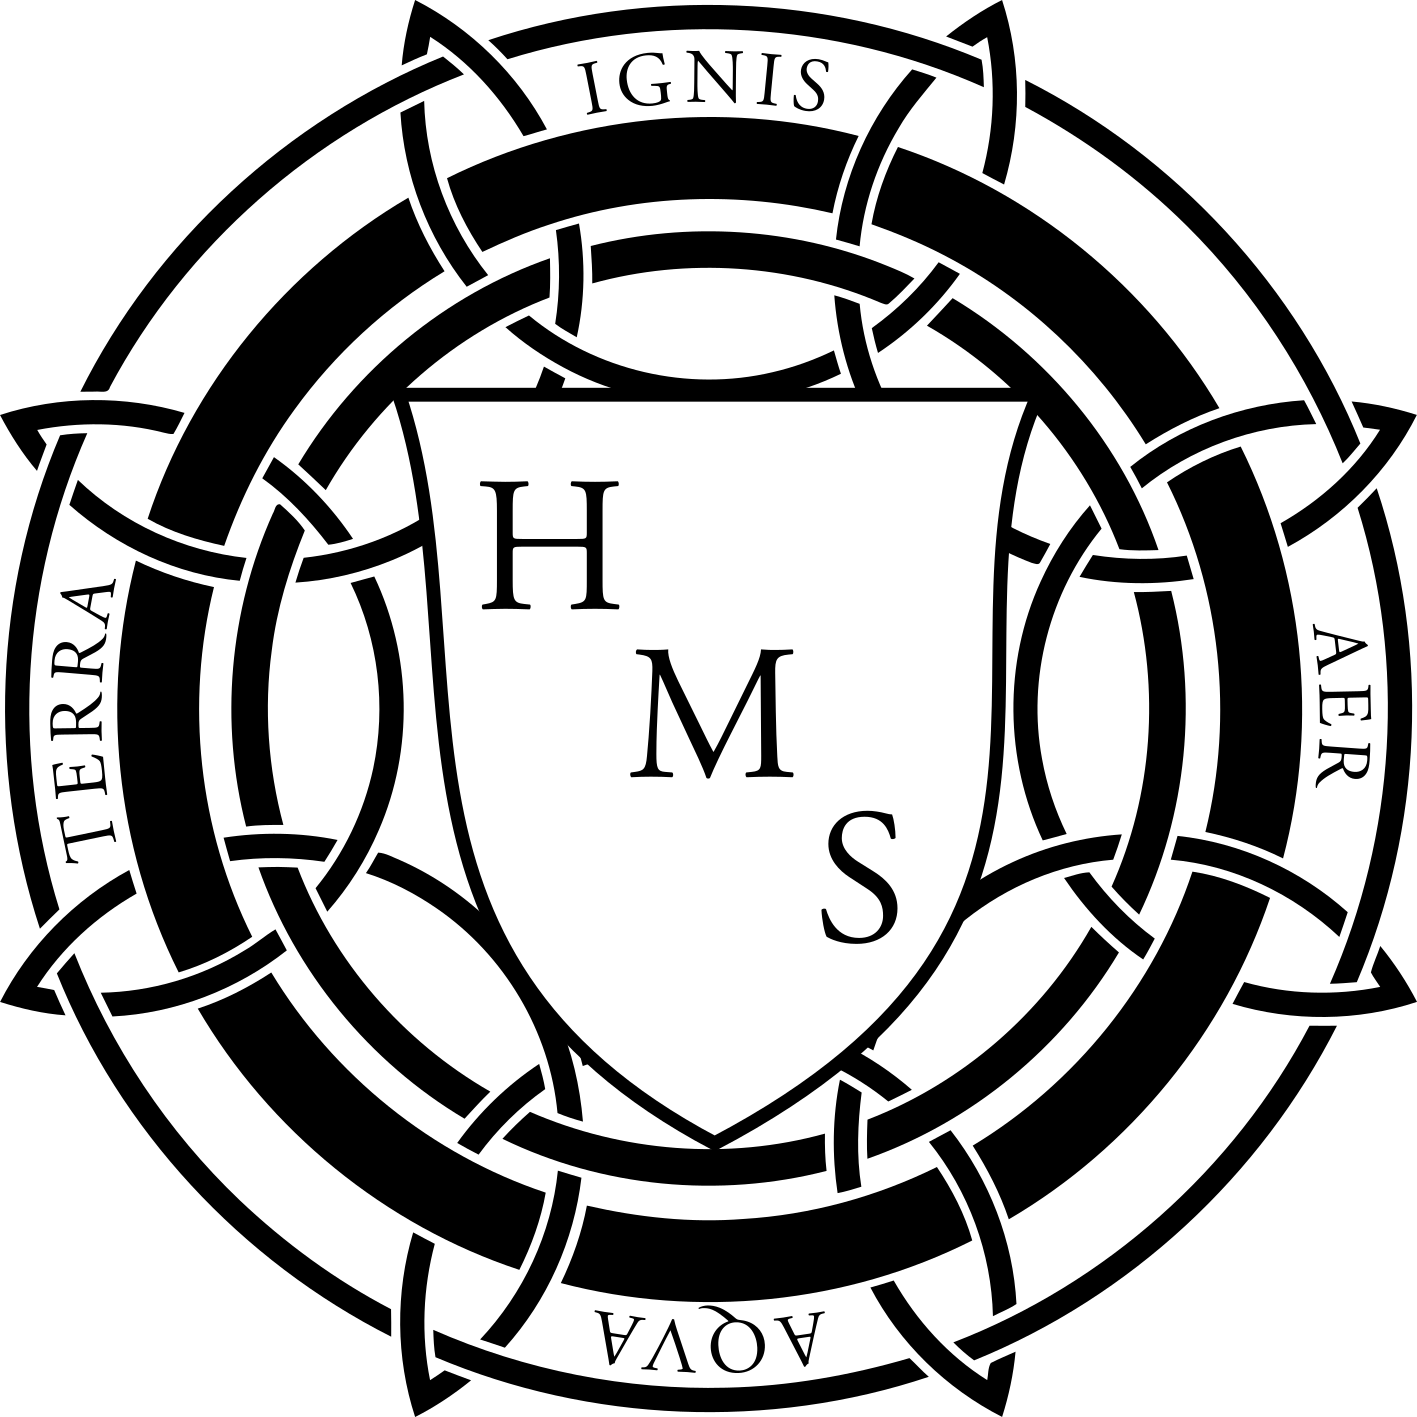 Health, Environment and Safety Committee (HMS)